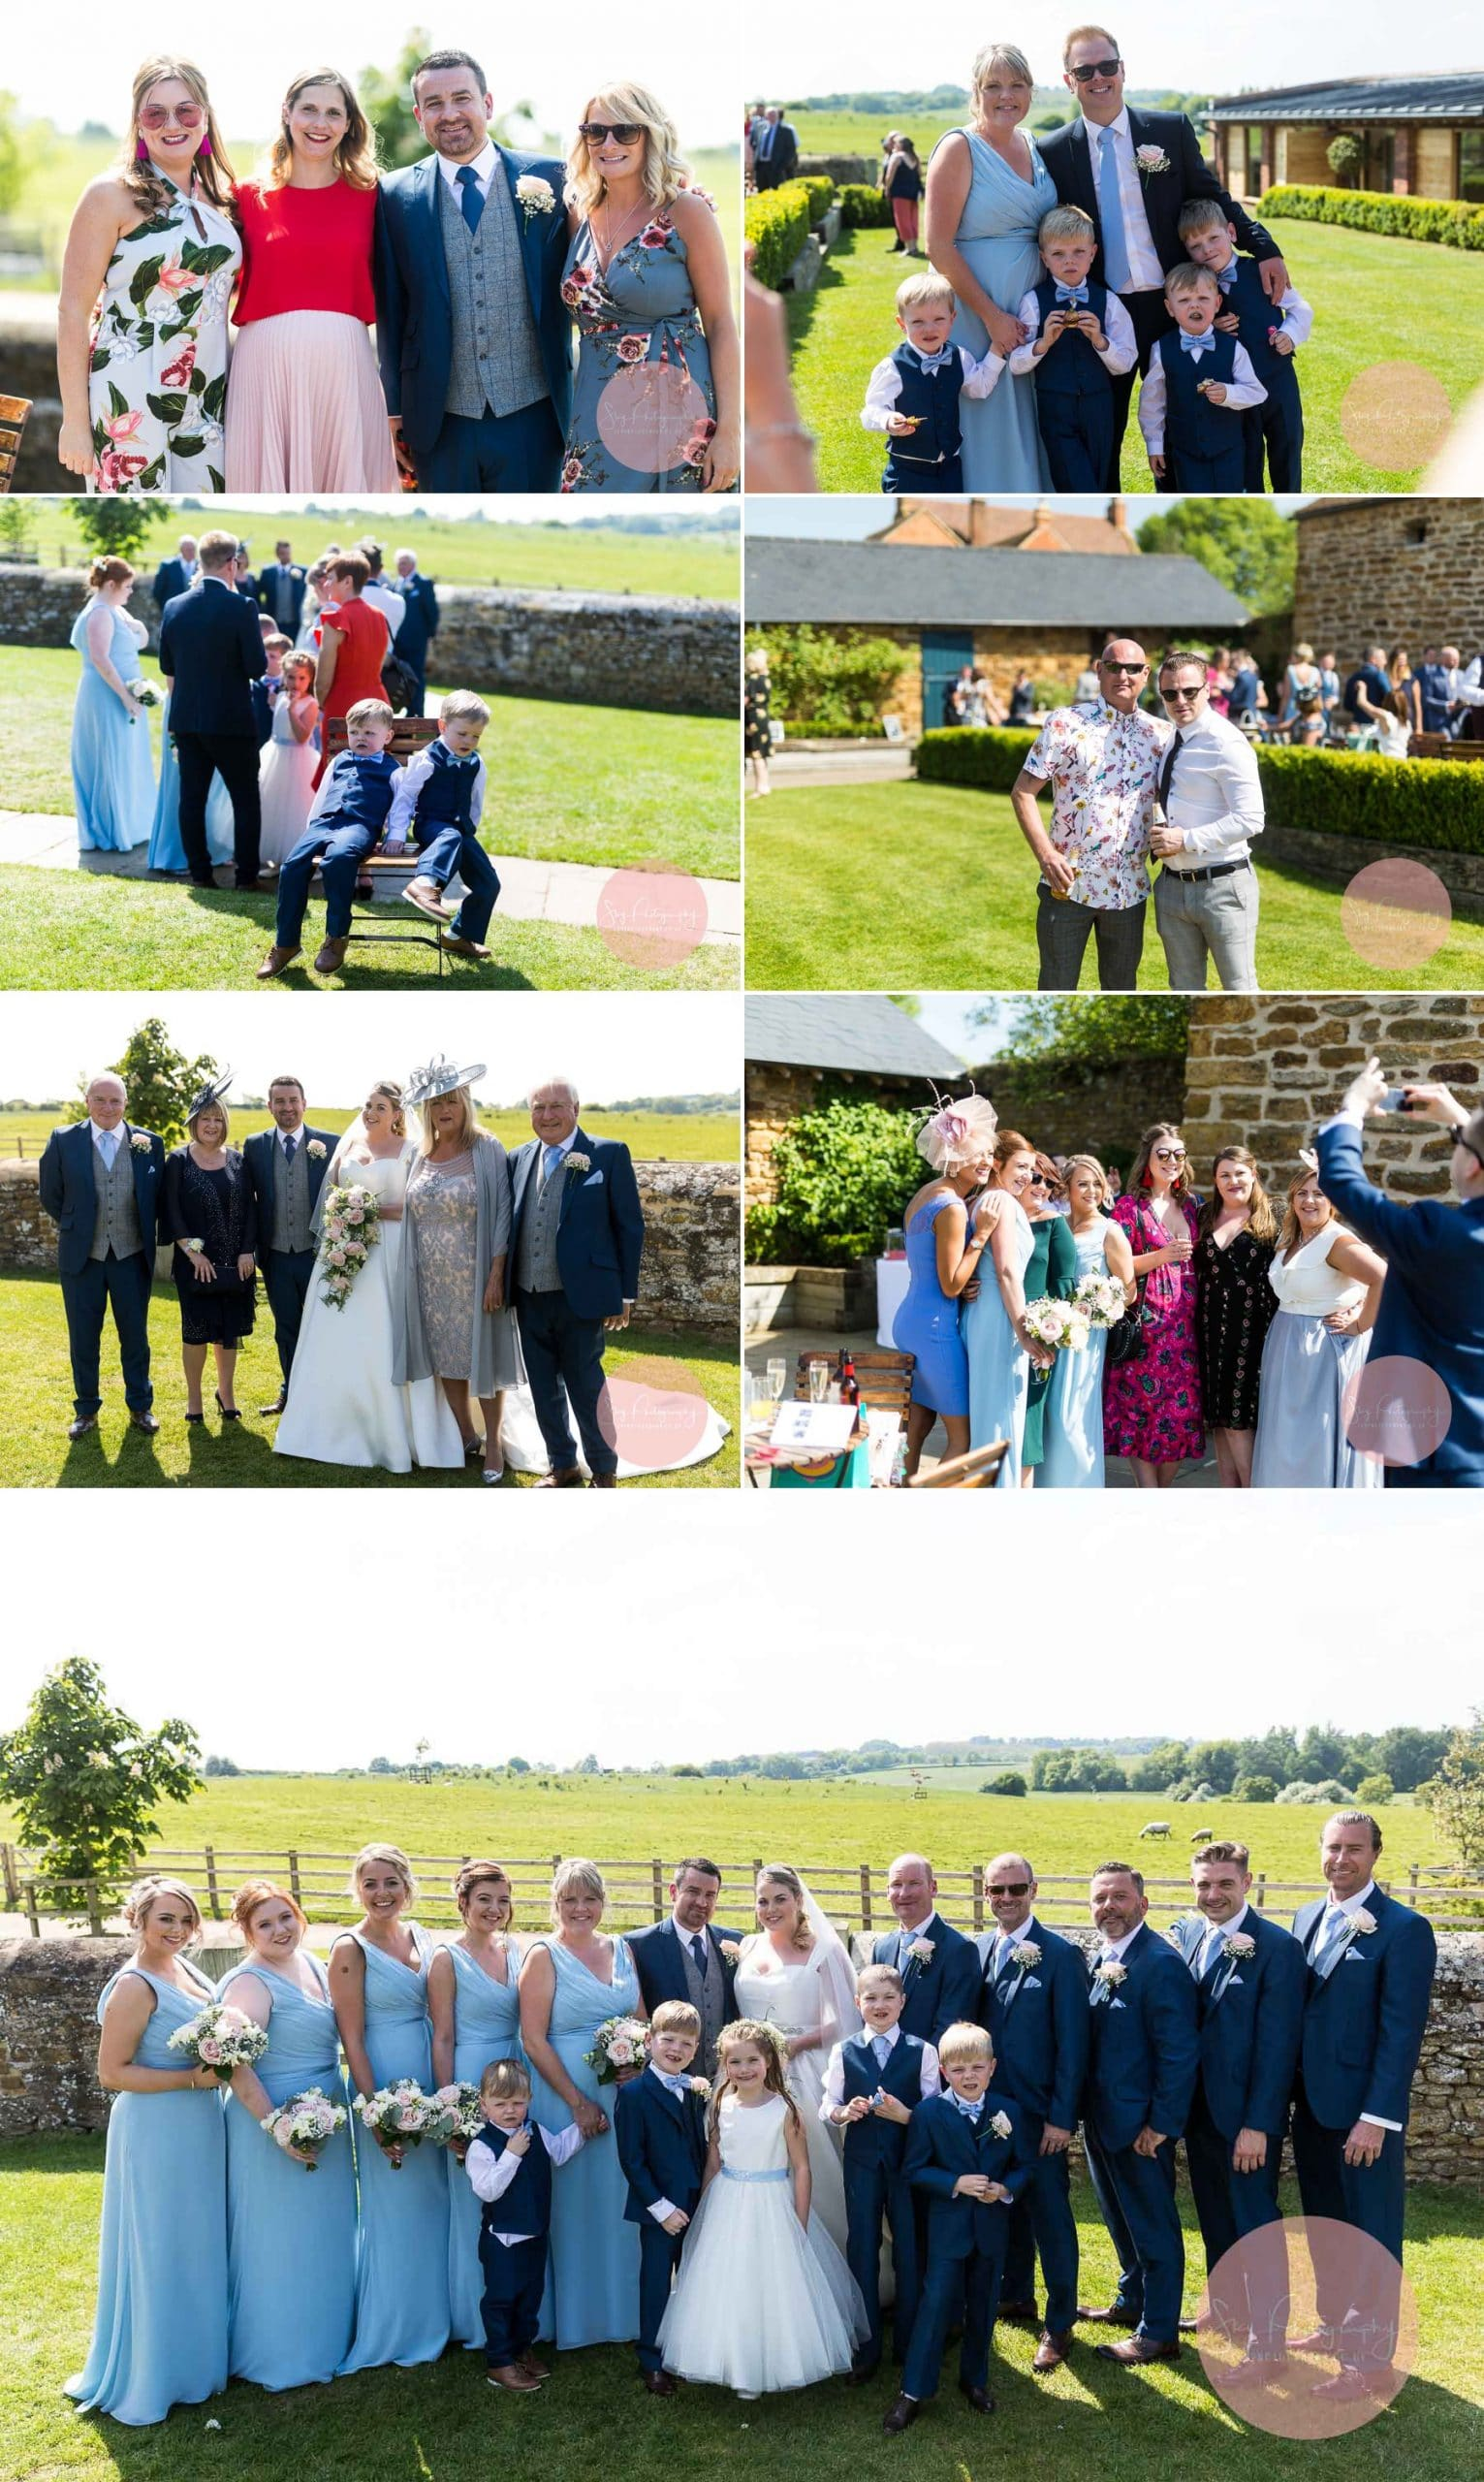 Wedding Guests at Dodford Manor posing for photos with sheep in the background